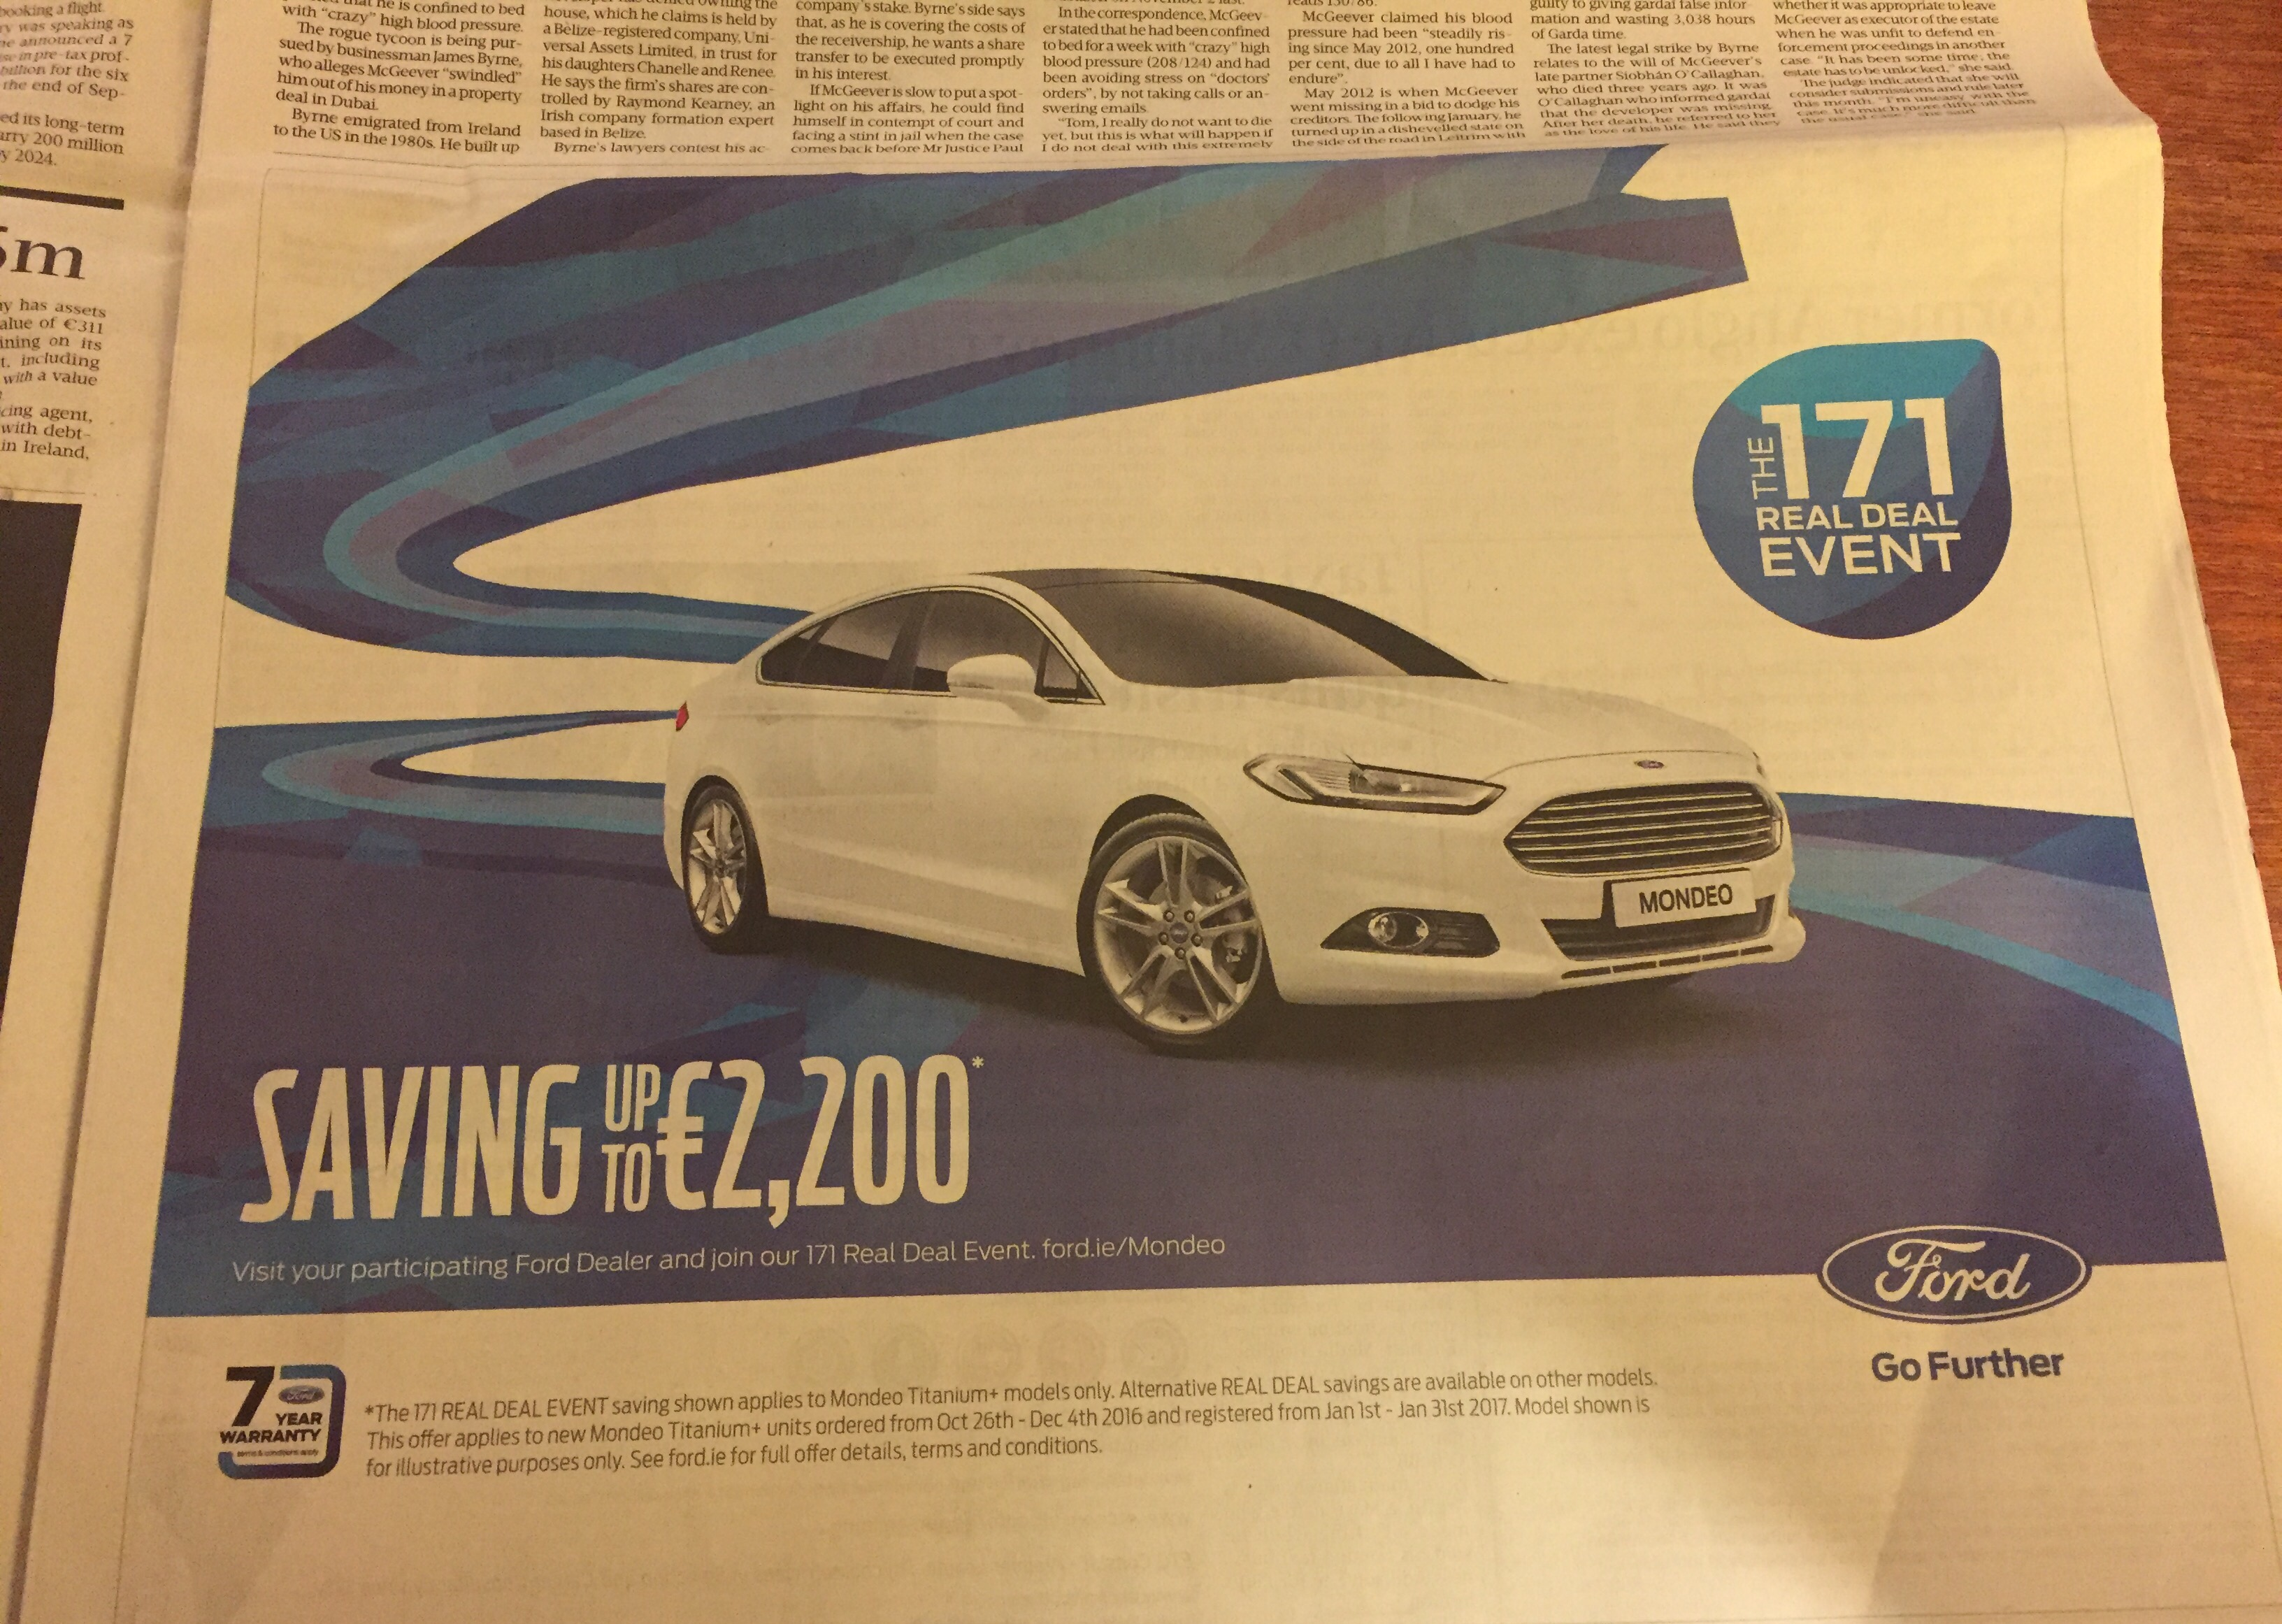 Ford – saving up to €2200